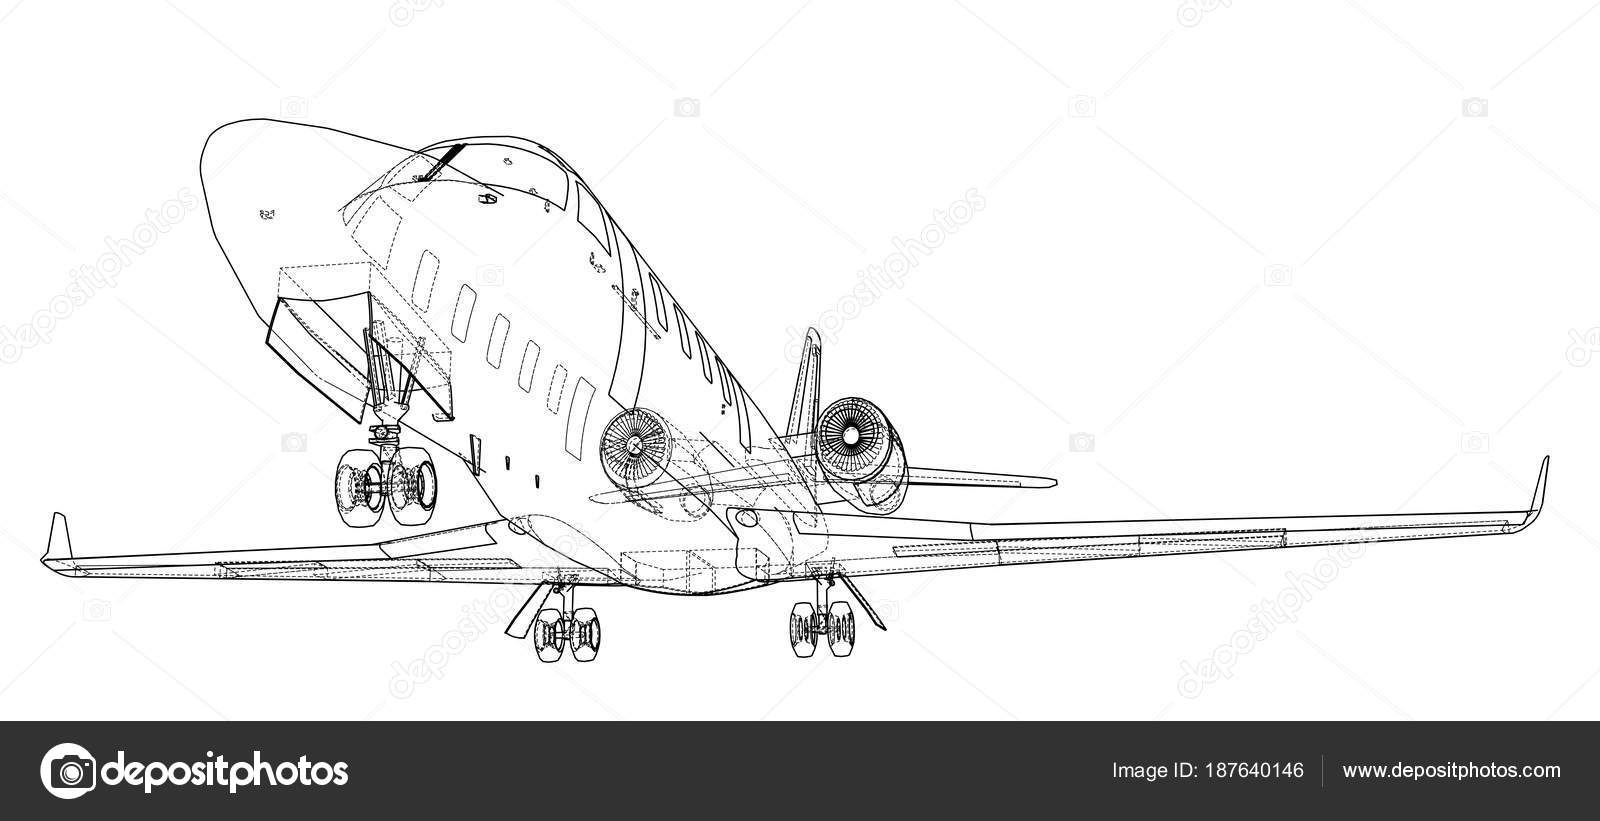 Airplane blueprint vector stock vector cherezoff 187640146 airplane blueprint vector illustration rendering of 3d vector by cherezoff malvernweather Images